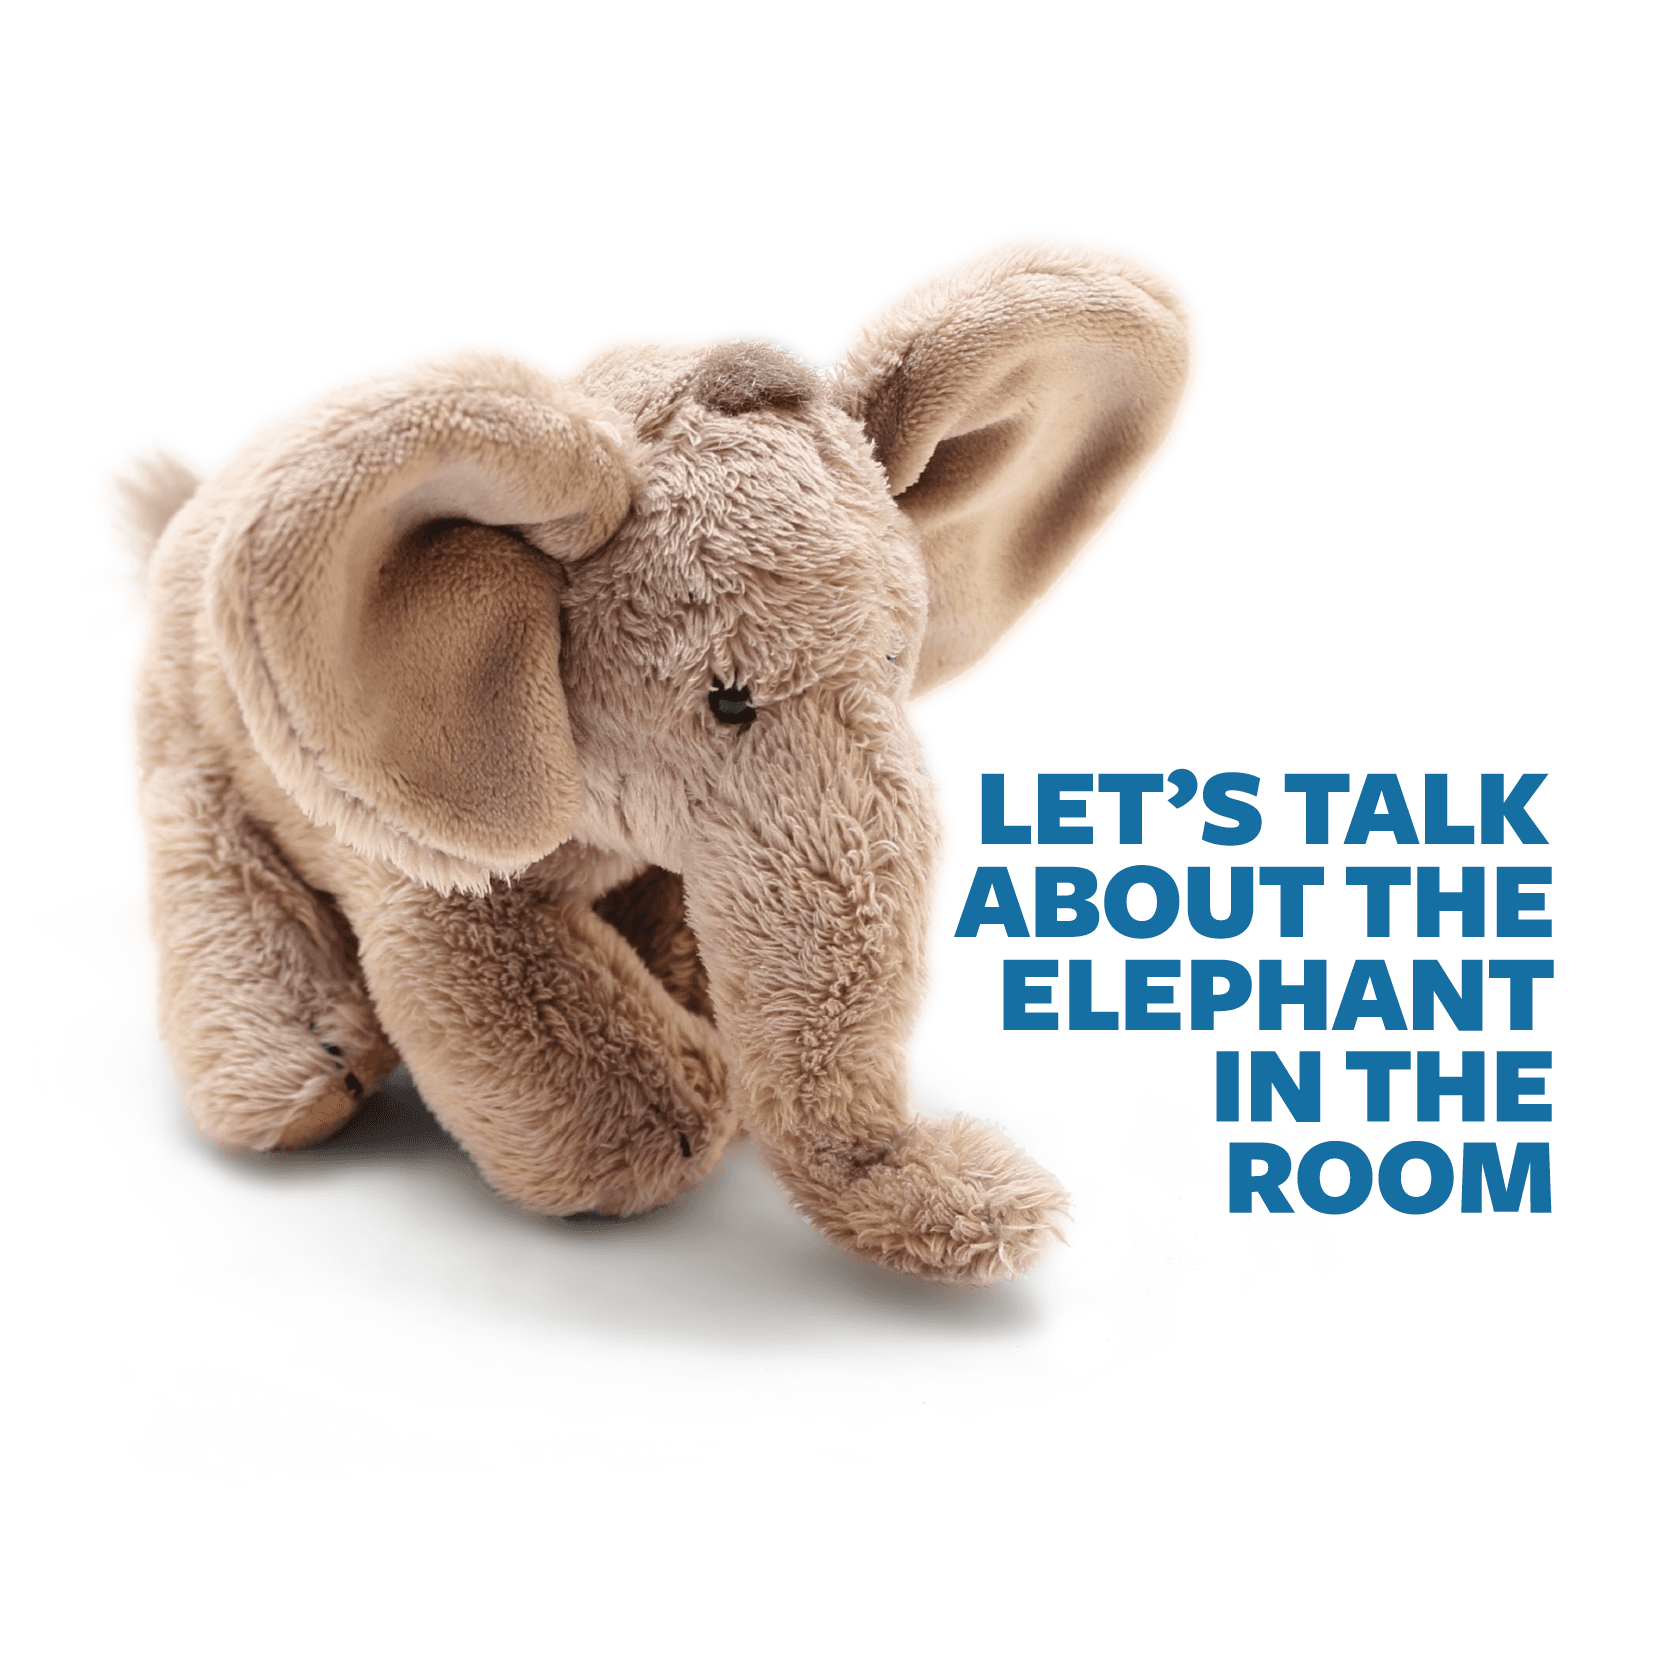 talk about the elephant in the room Opens in new window